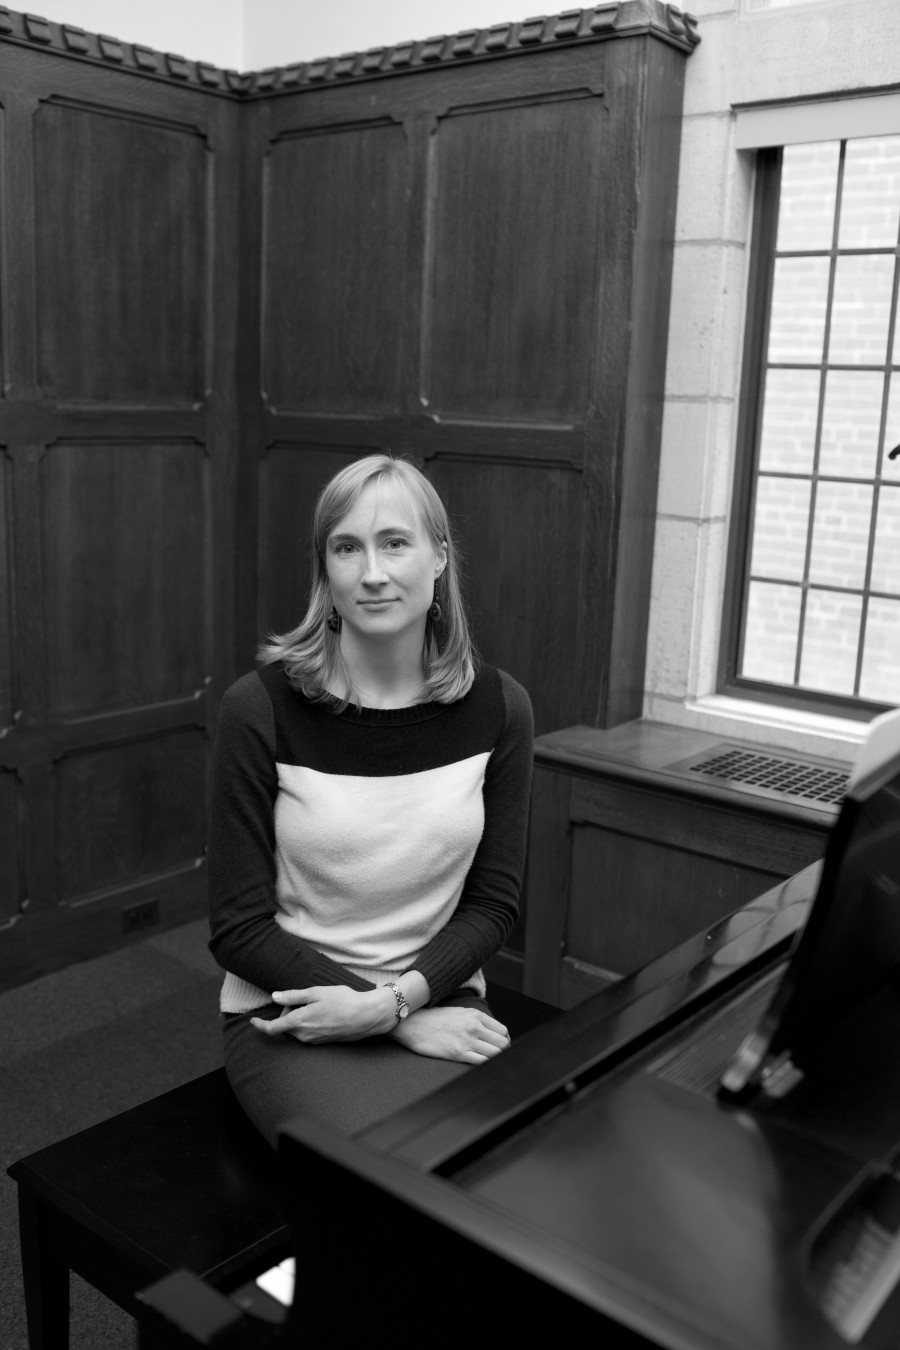 Hannah Lash is an award-winning composer and professor at the Yale School of Music. Photo by Jennifer Lu.